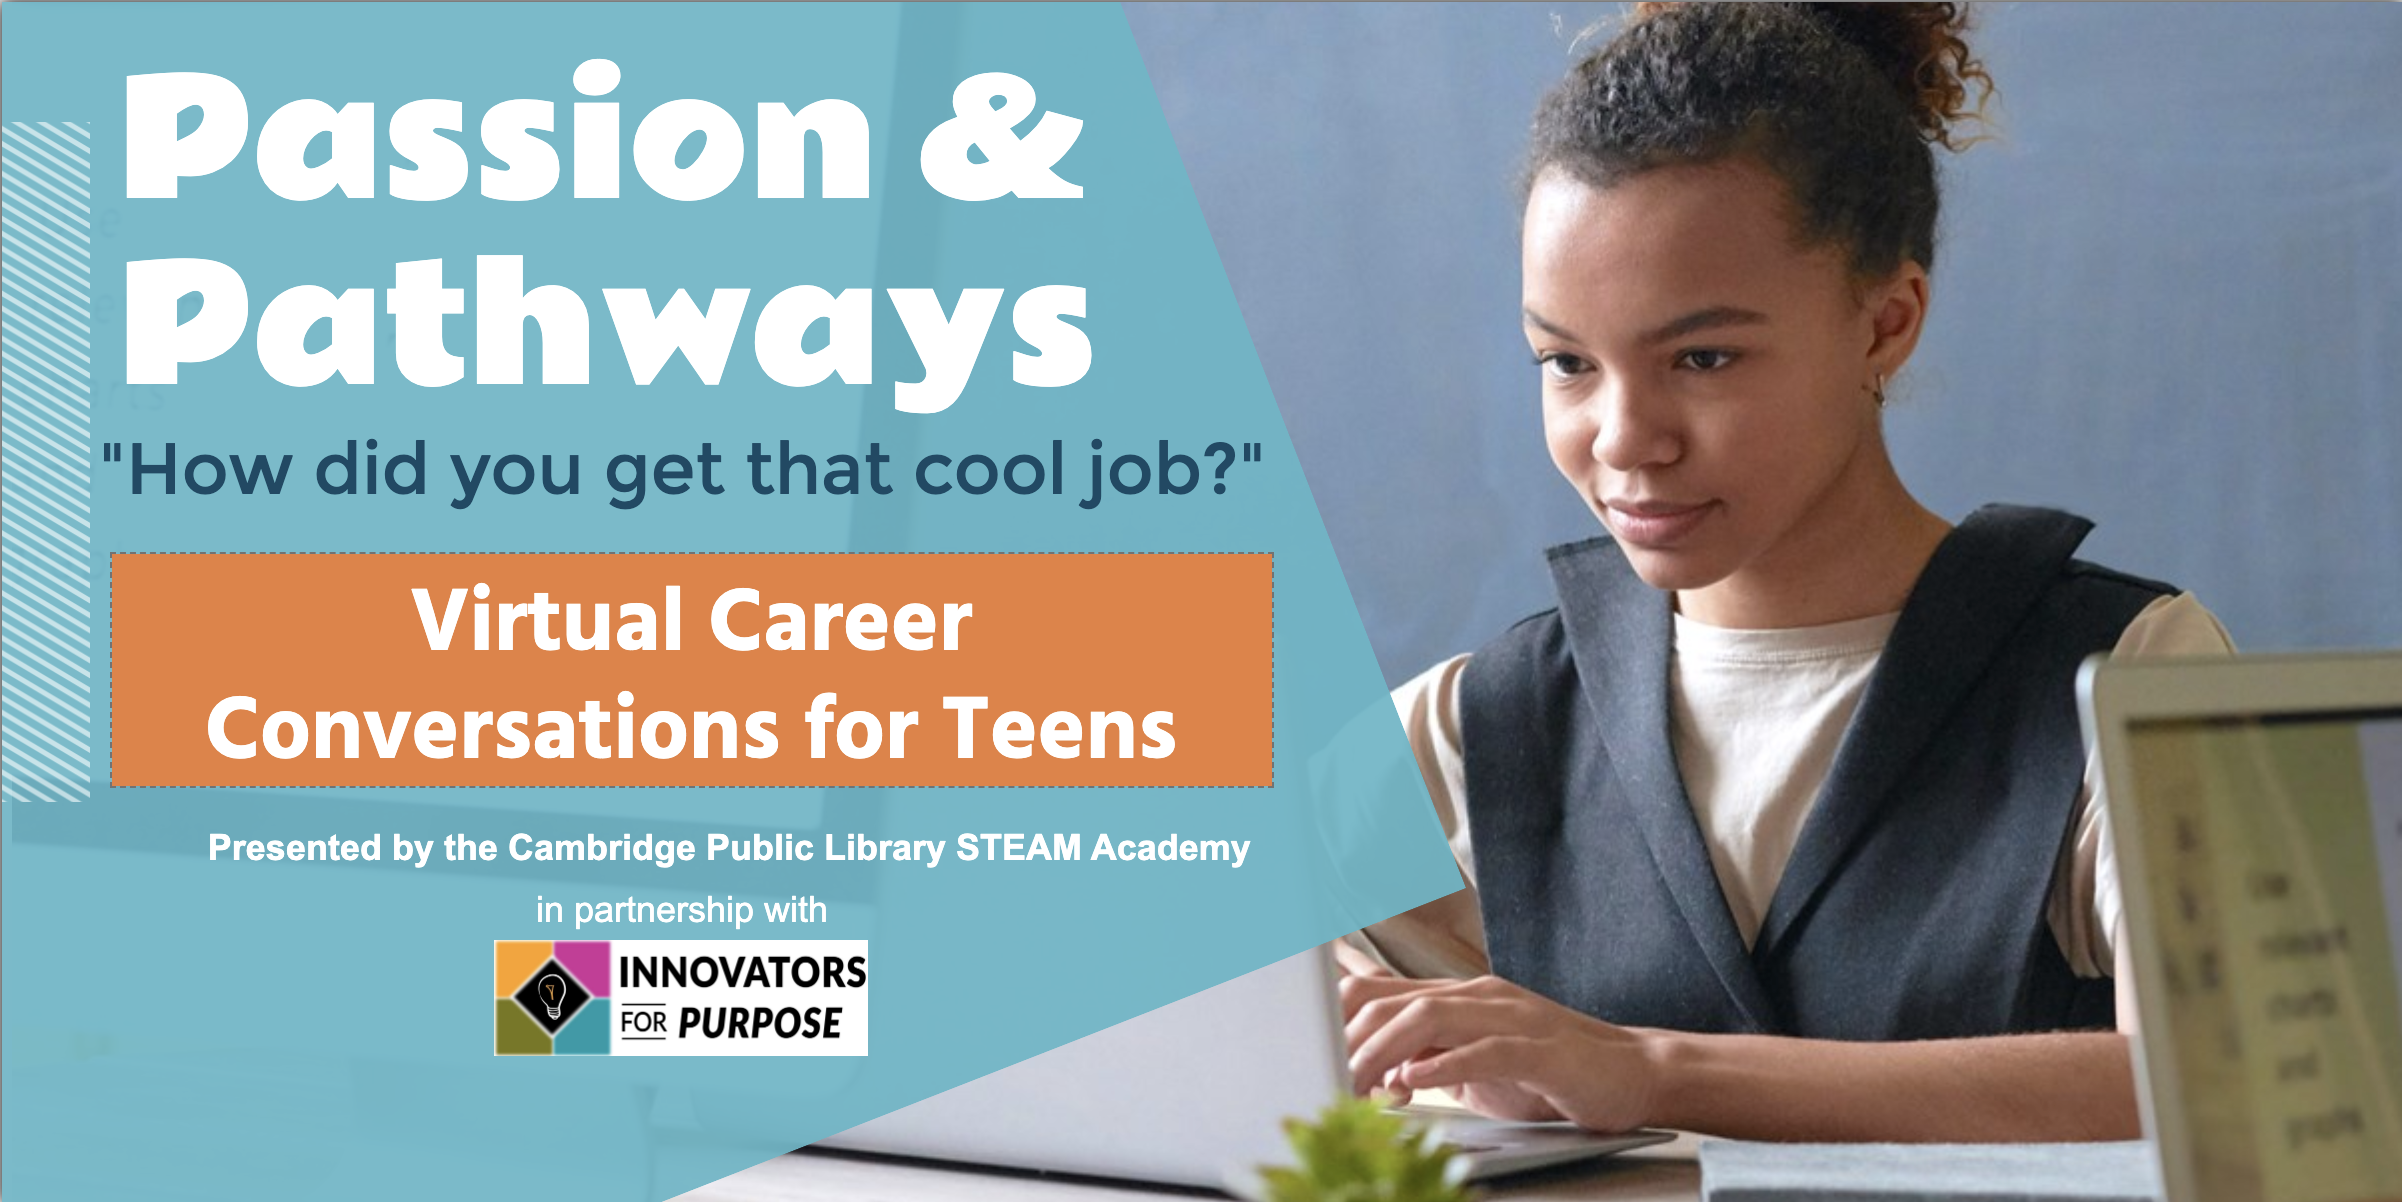 Passion & Pathways: A New Virtual Series for Teens